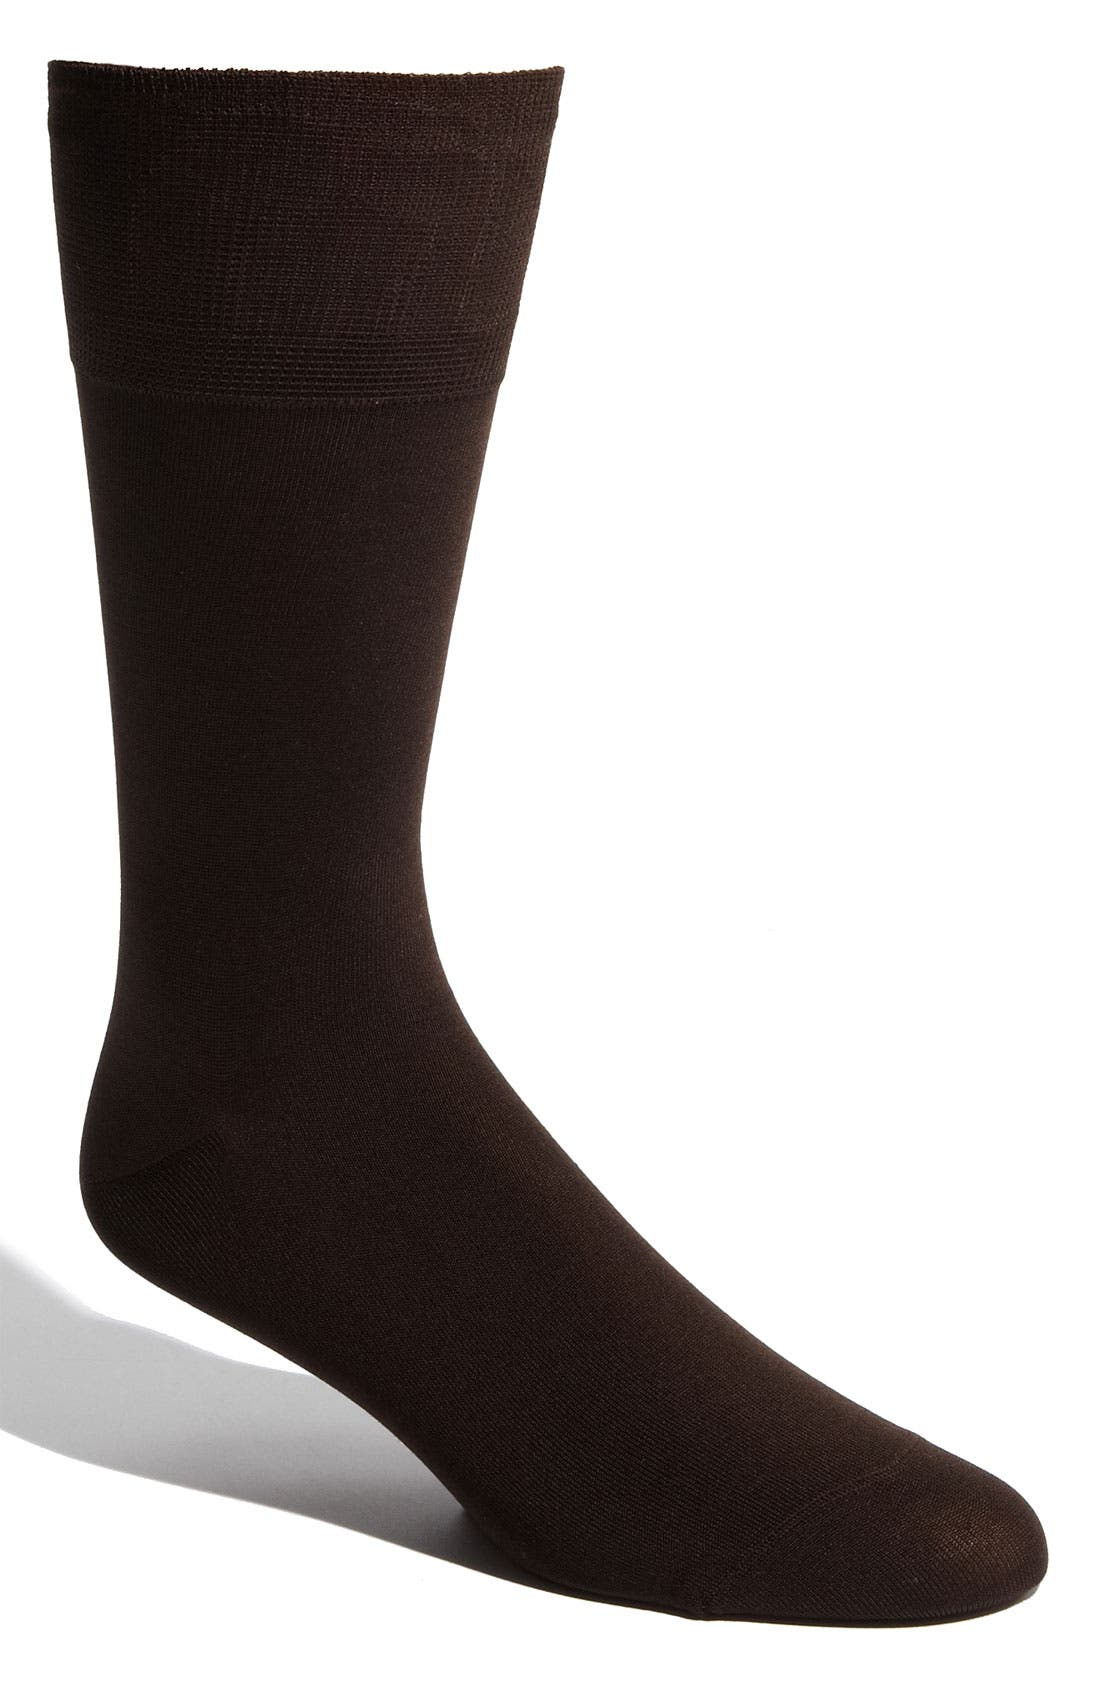 Alternate Image 1 Selected - John W. Nordstrom® Socks (Men)